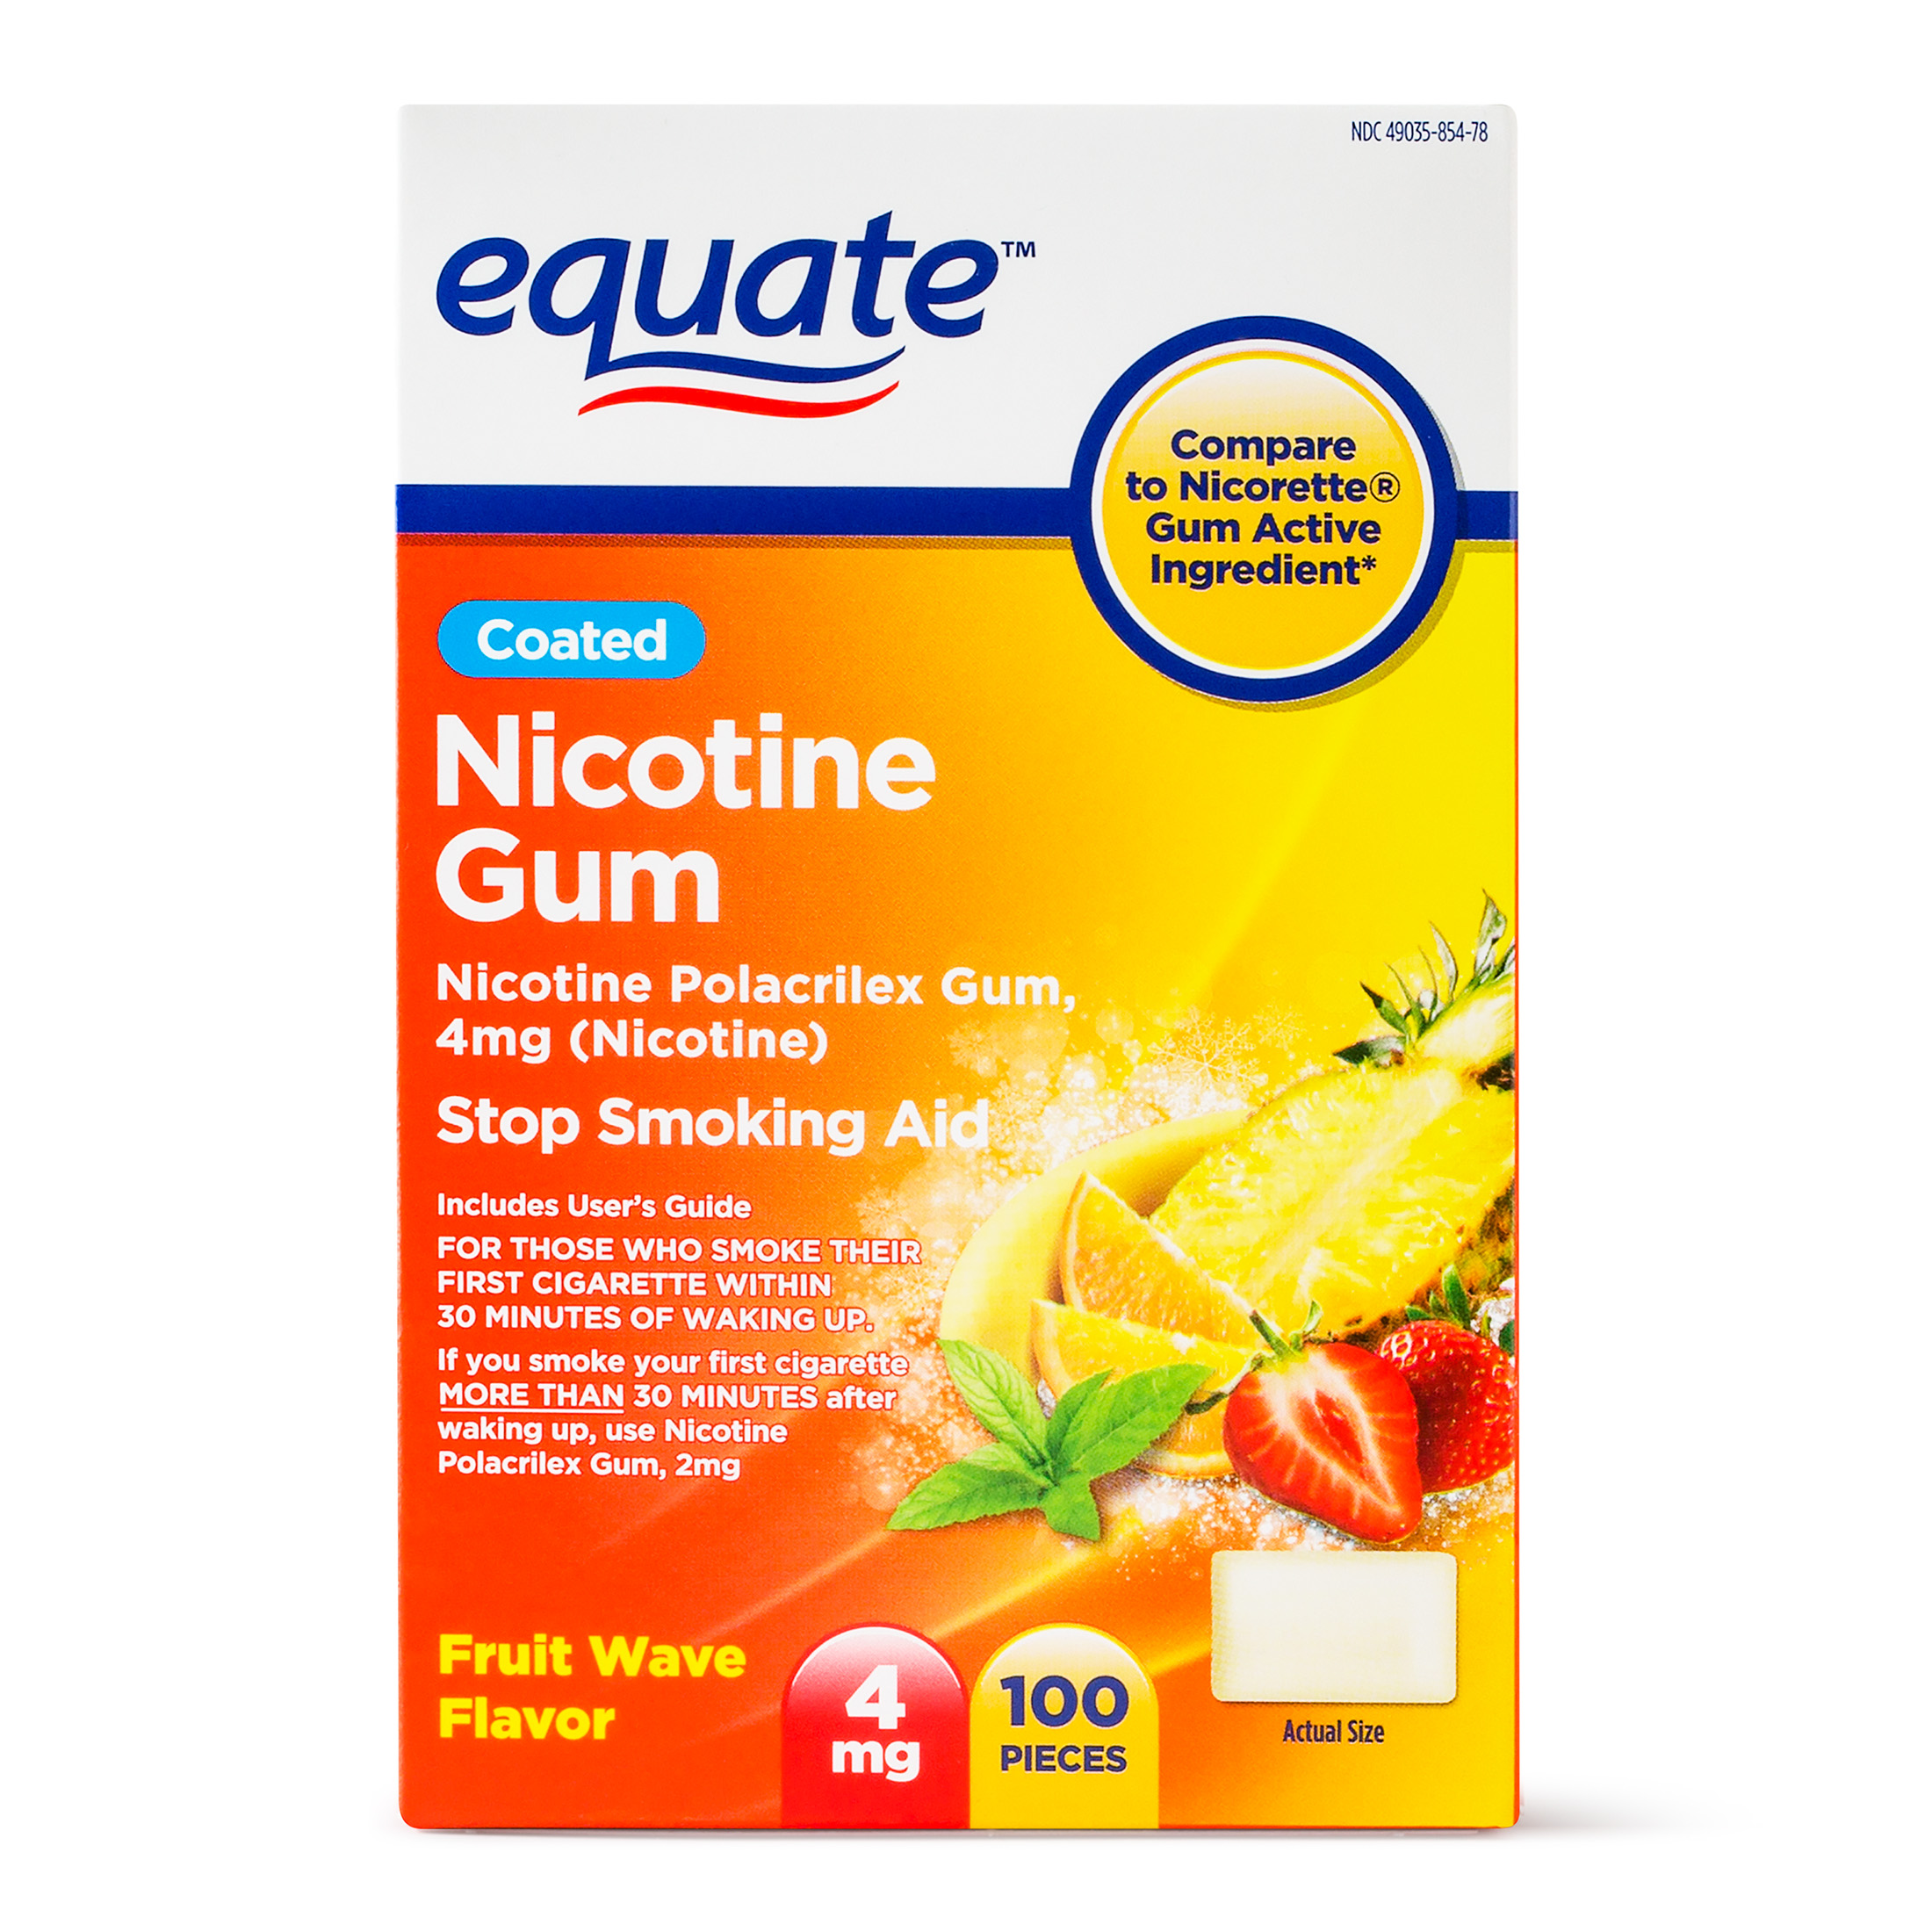 Equate Coated Nicotine Gum, Fruit Wave Flavor, 4 mg, 100 Count